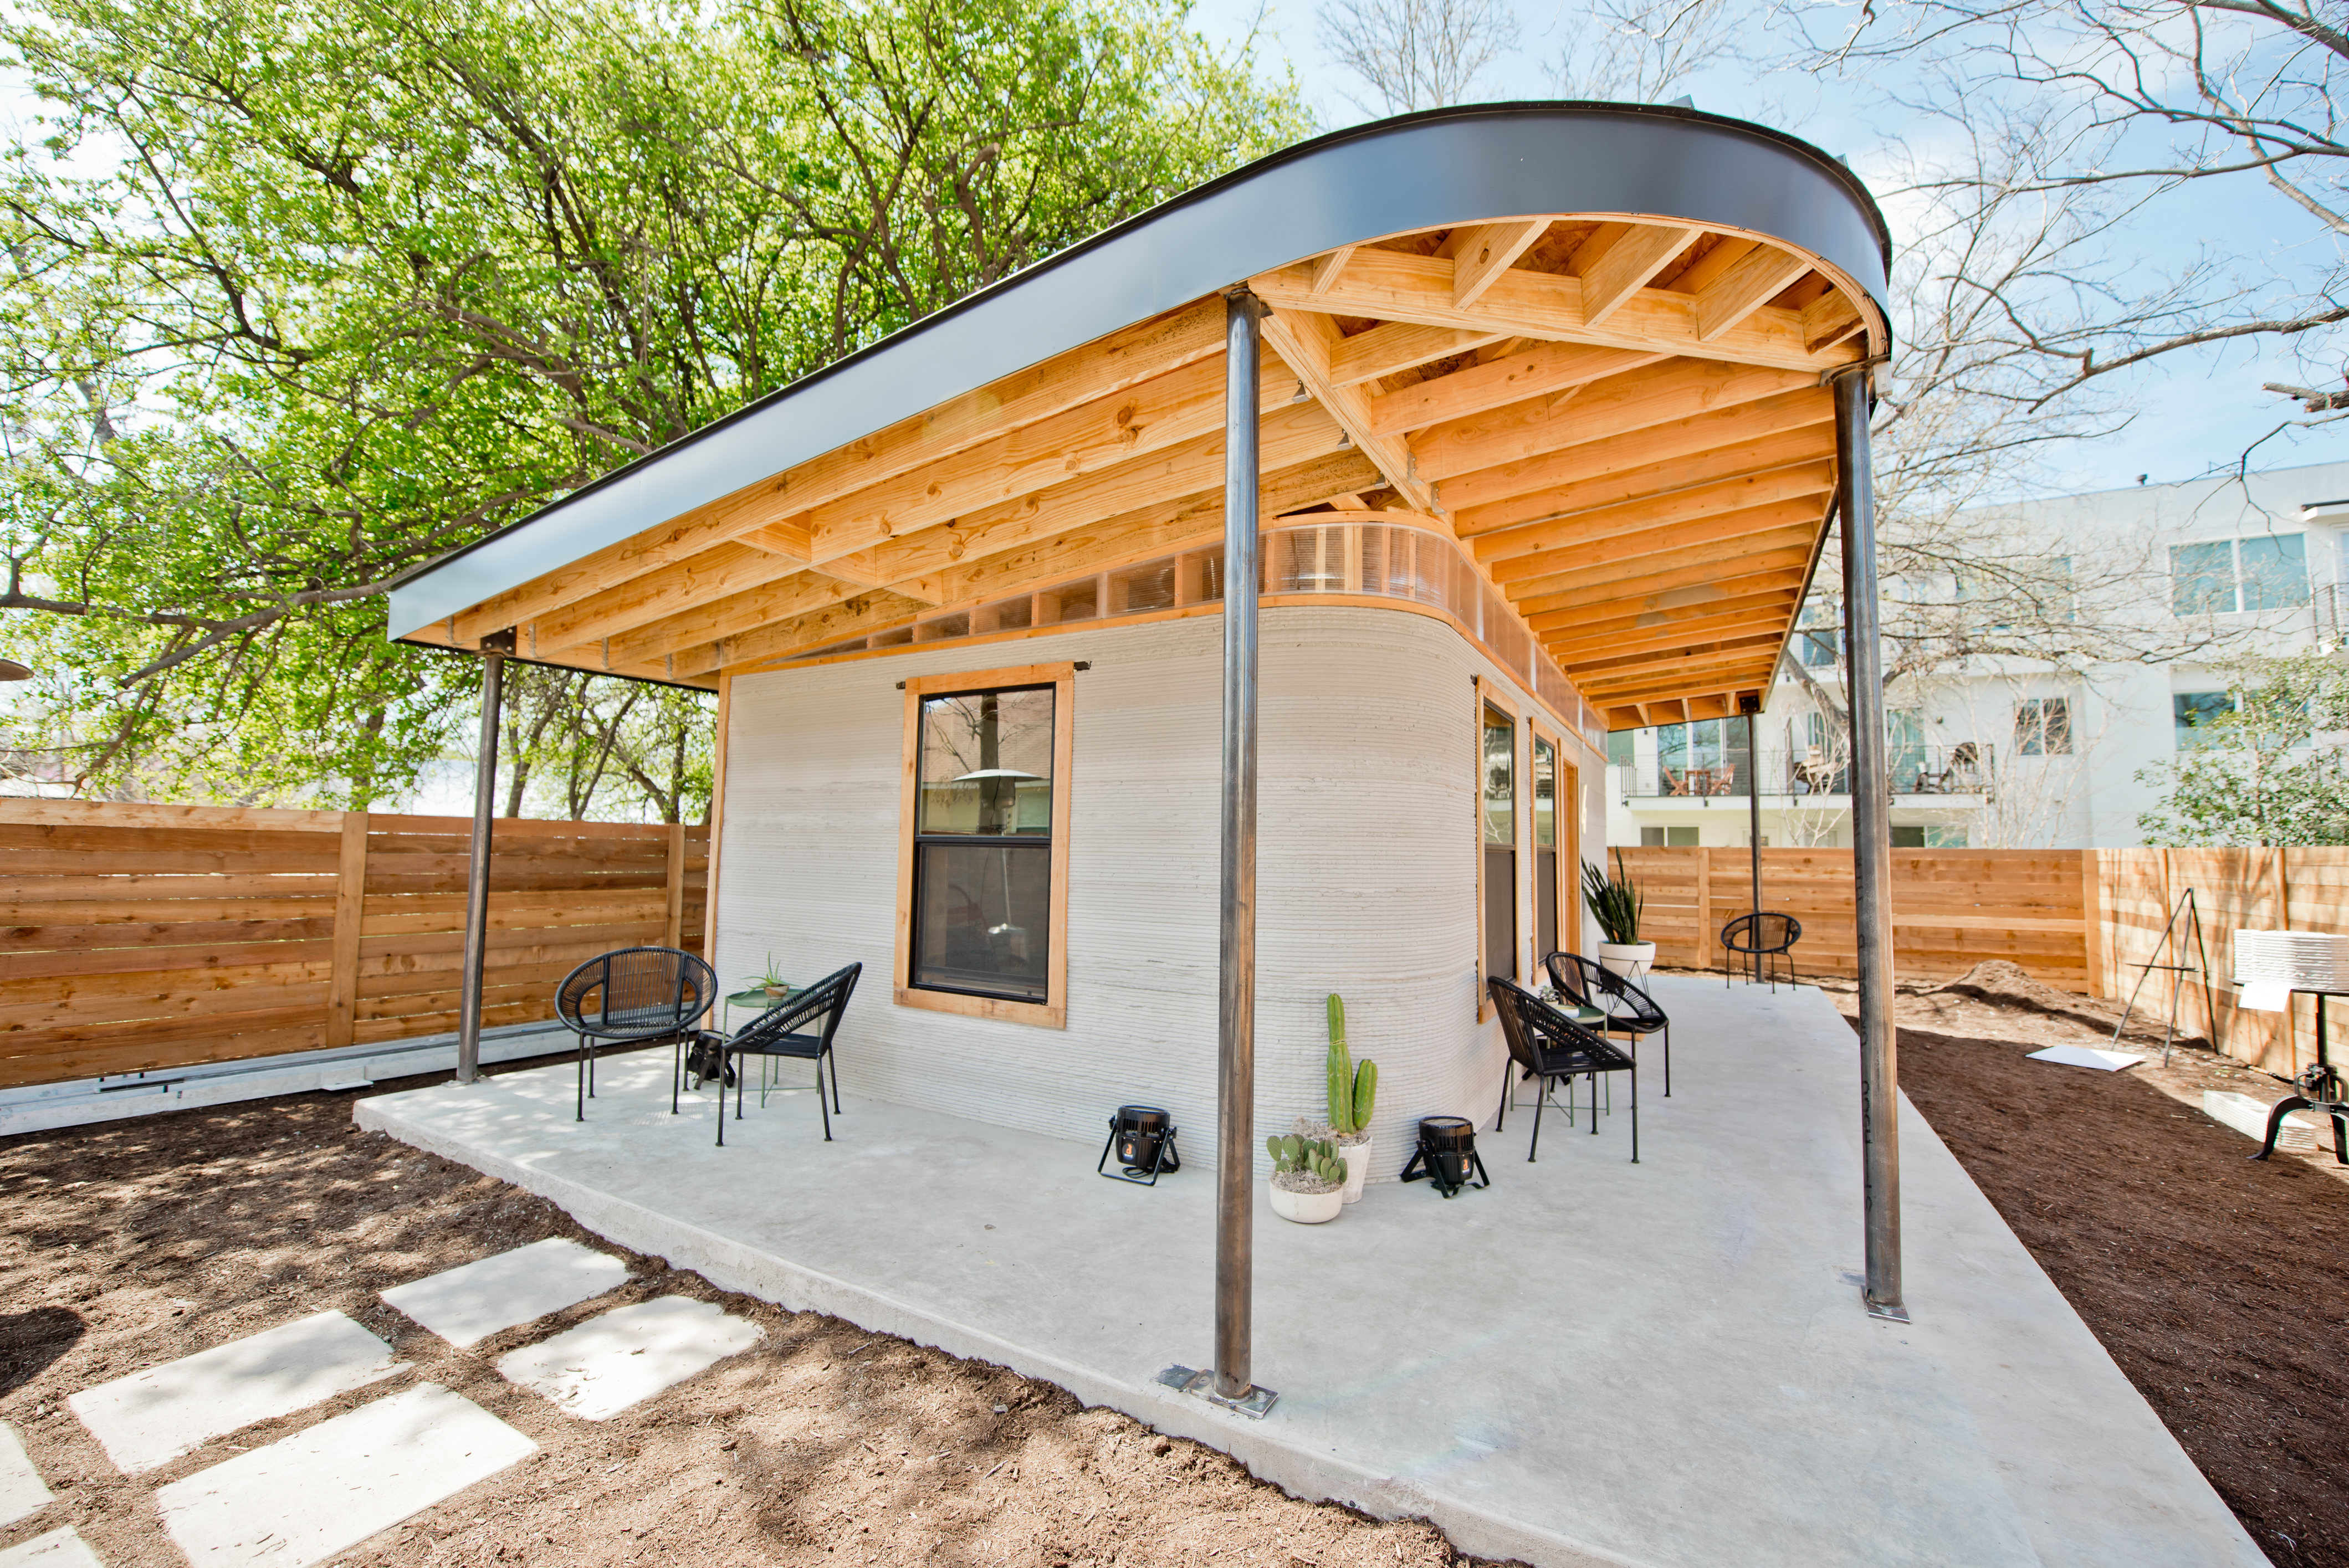 Small cement home with rounded front corner and covered wraparound porch